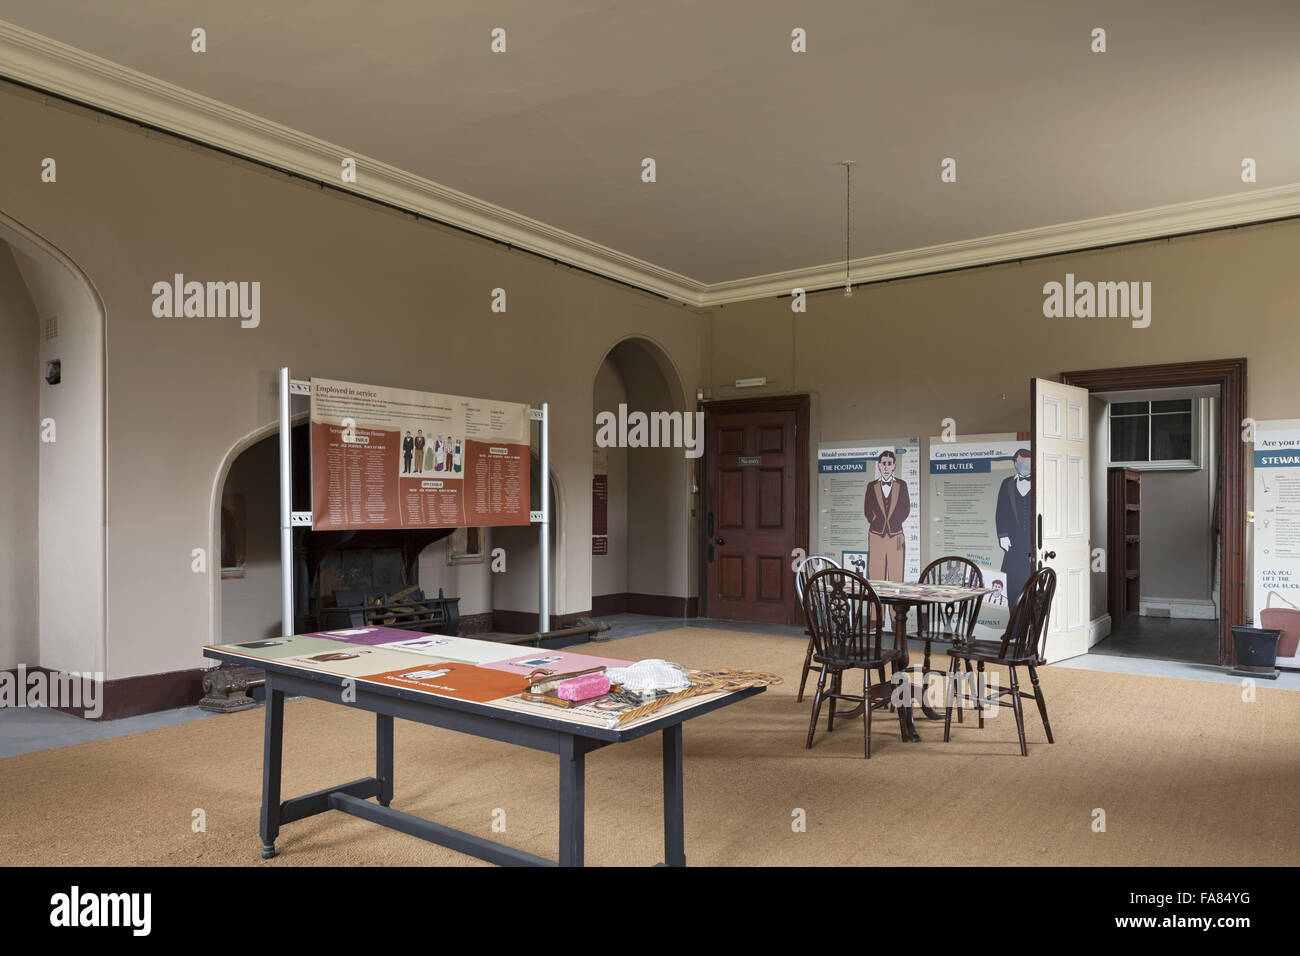 Exhibition and interpretation panels in the Billiard Room at Belton House, Lincolnshire. Stock Photo